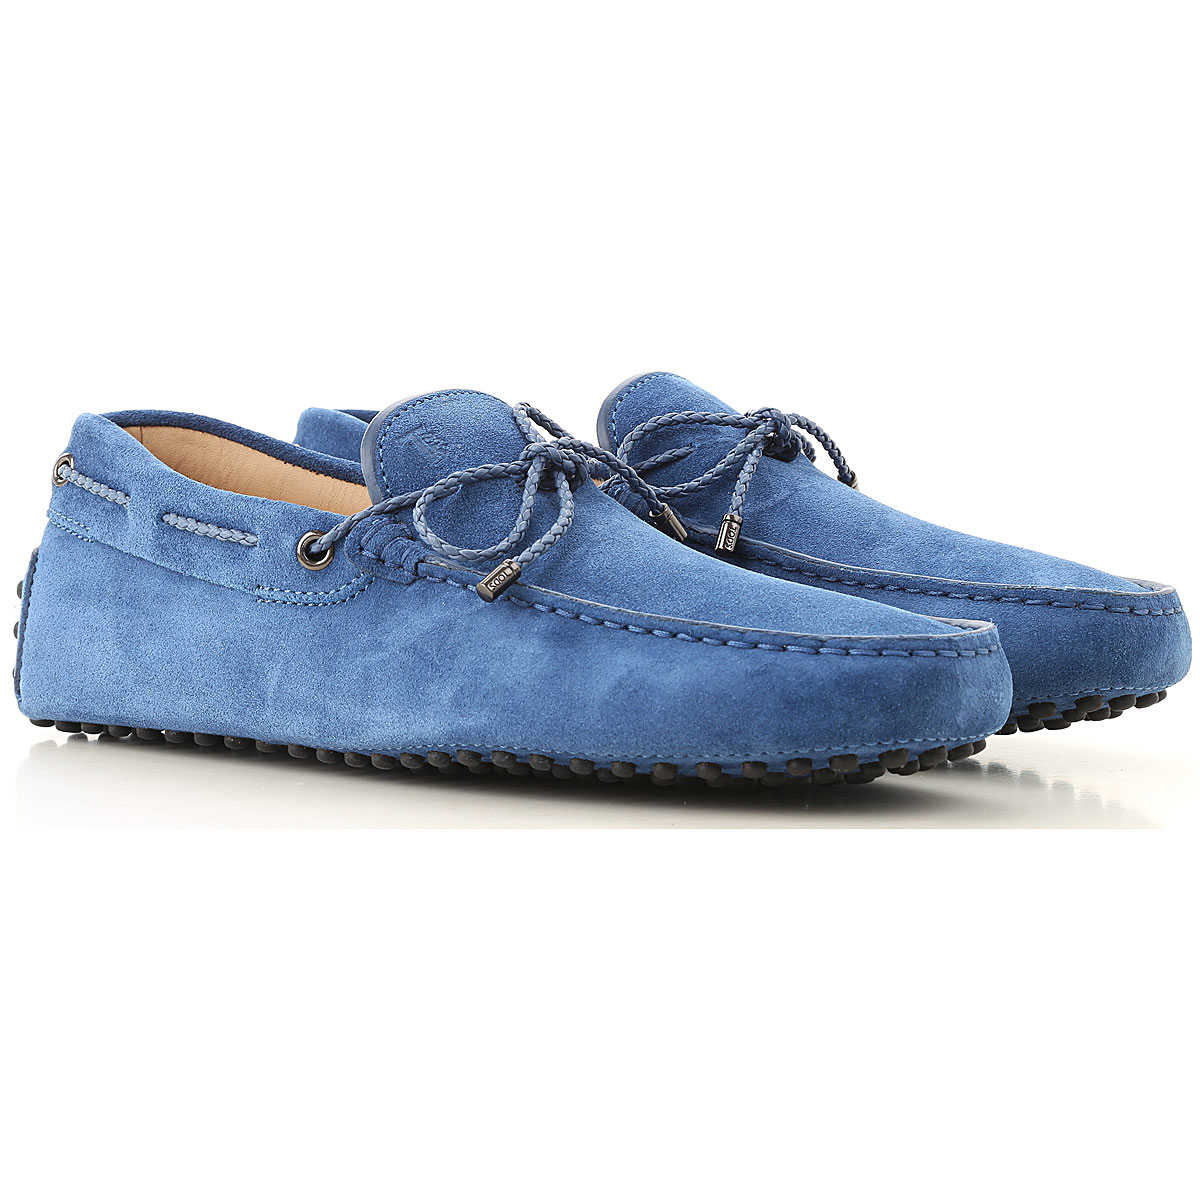 Tods Loafers for Men Bright Bluette USA - GOOFASH